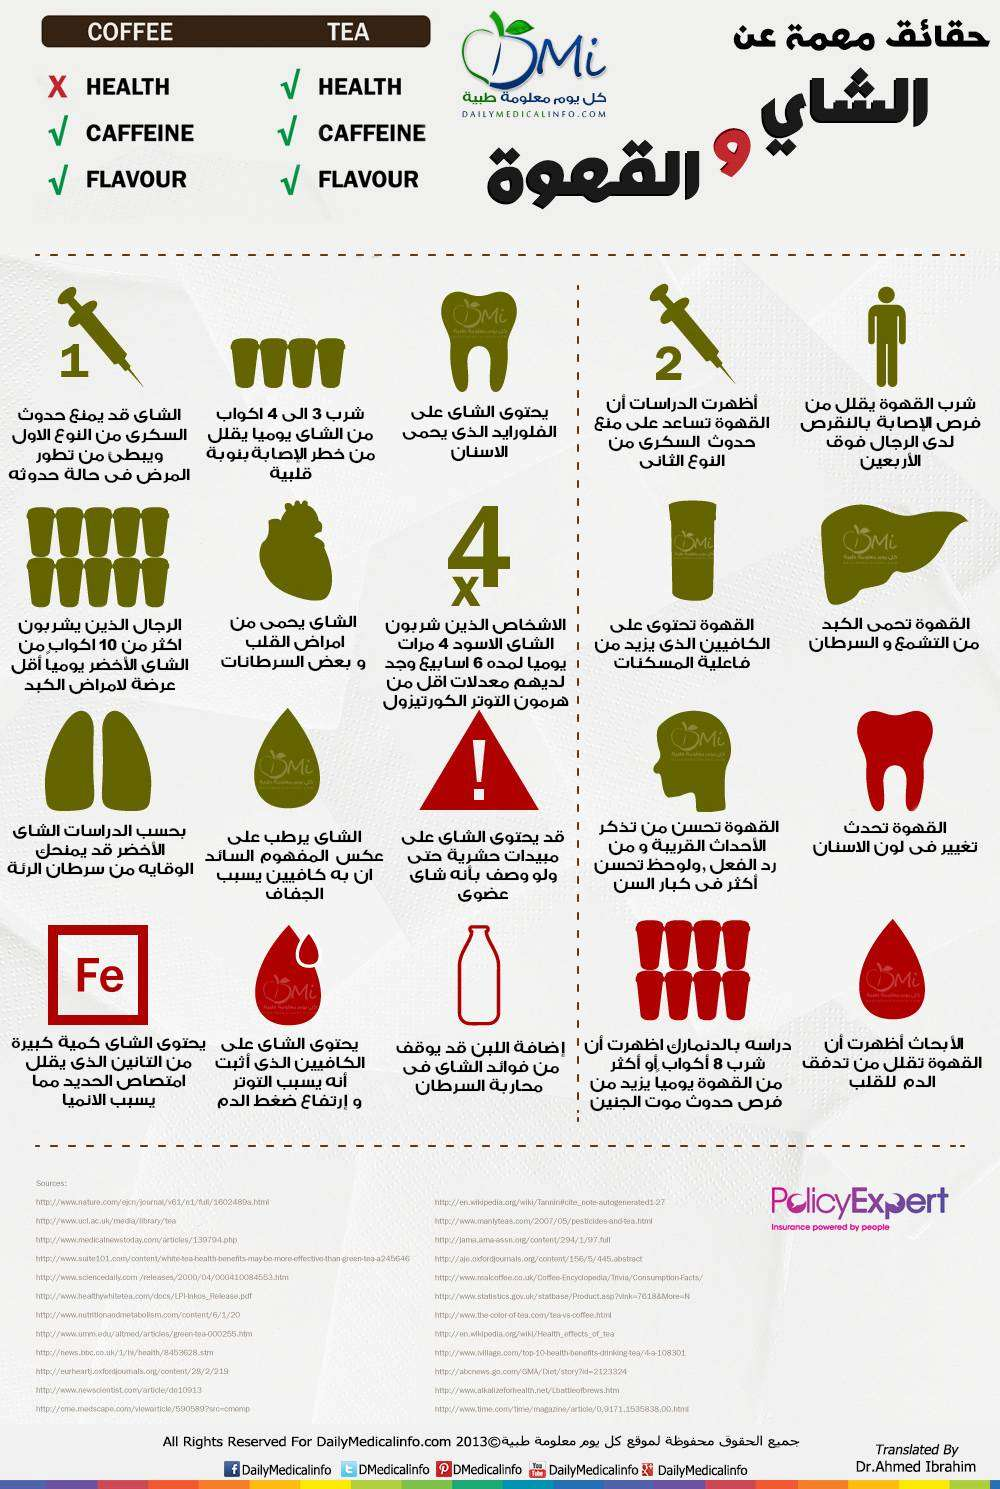 انفوجرافيك - صفحة 9 DailyMedicalinfo_Tea_vs_Coffee1